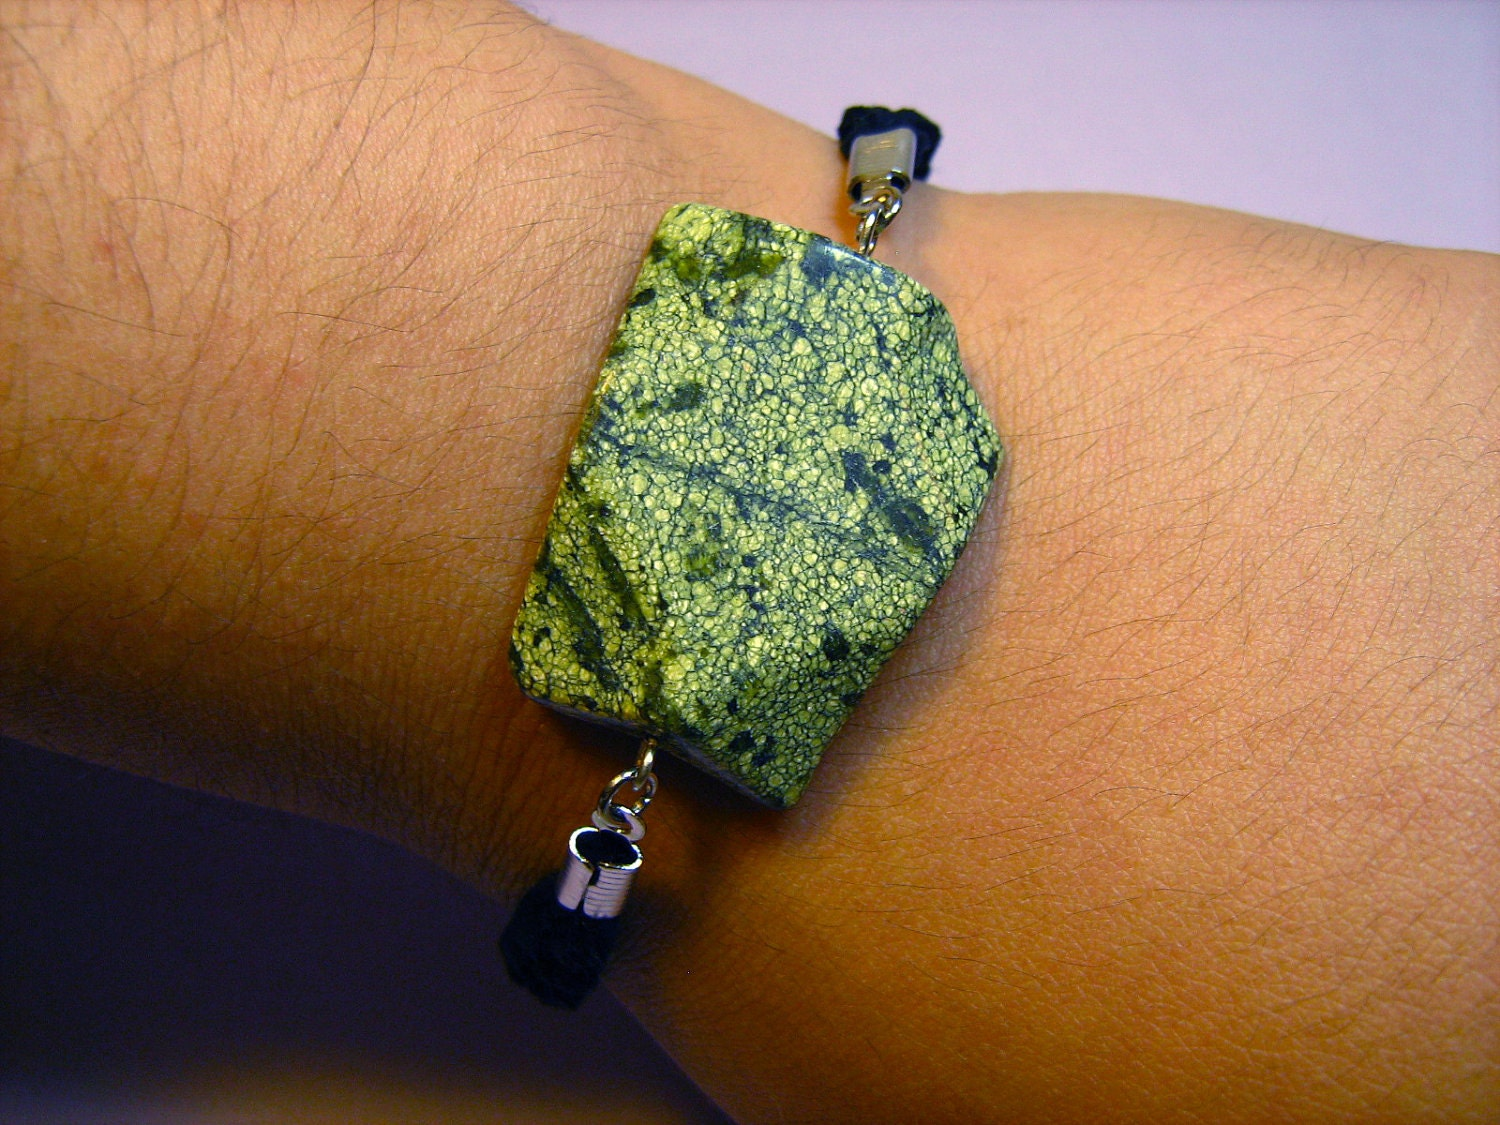 Bracelet: Speckled Green Serpentine Stone with a Braided Black Suede Cord and Silvertone Findings, for Women